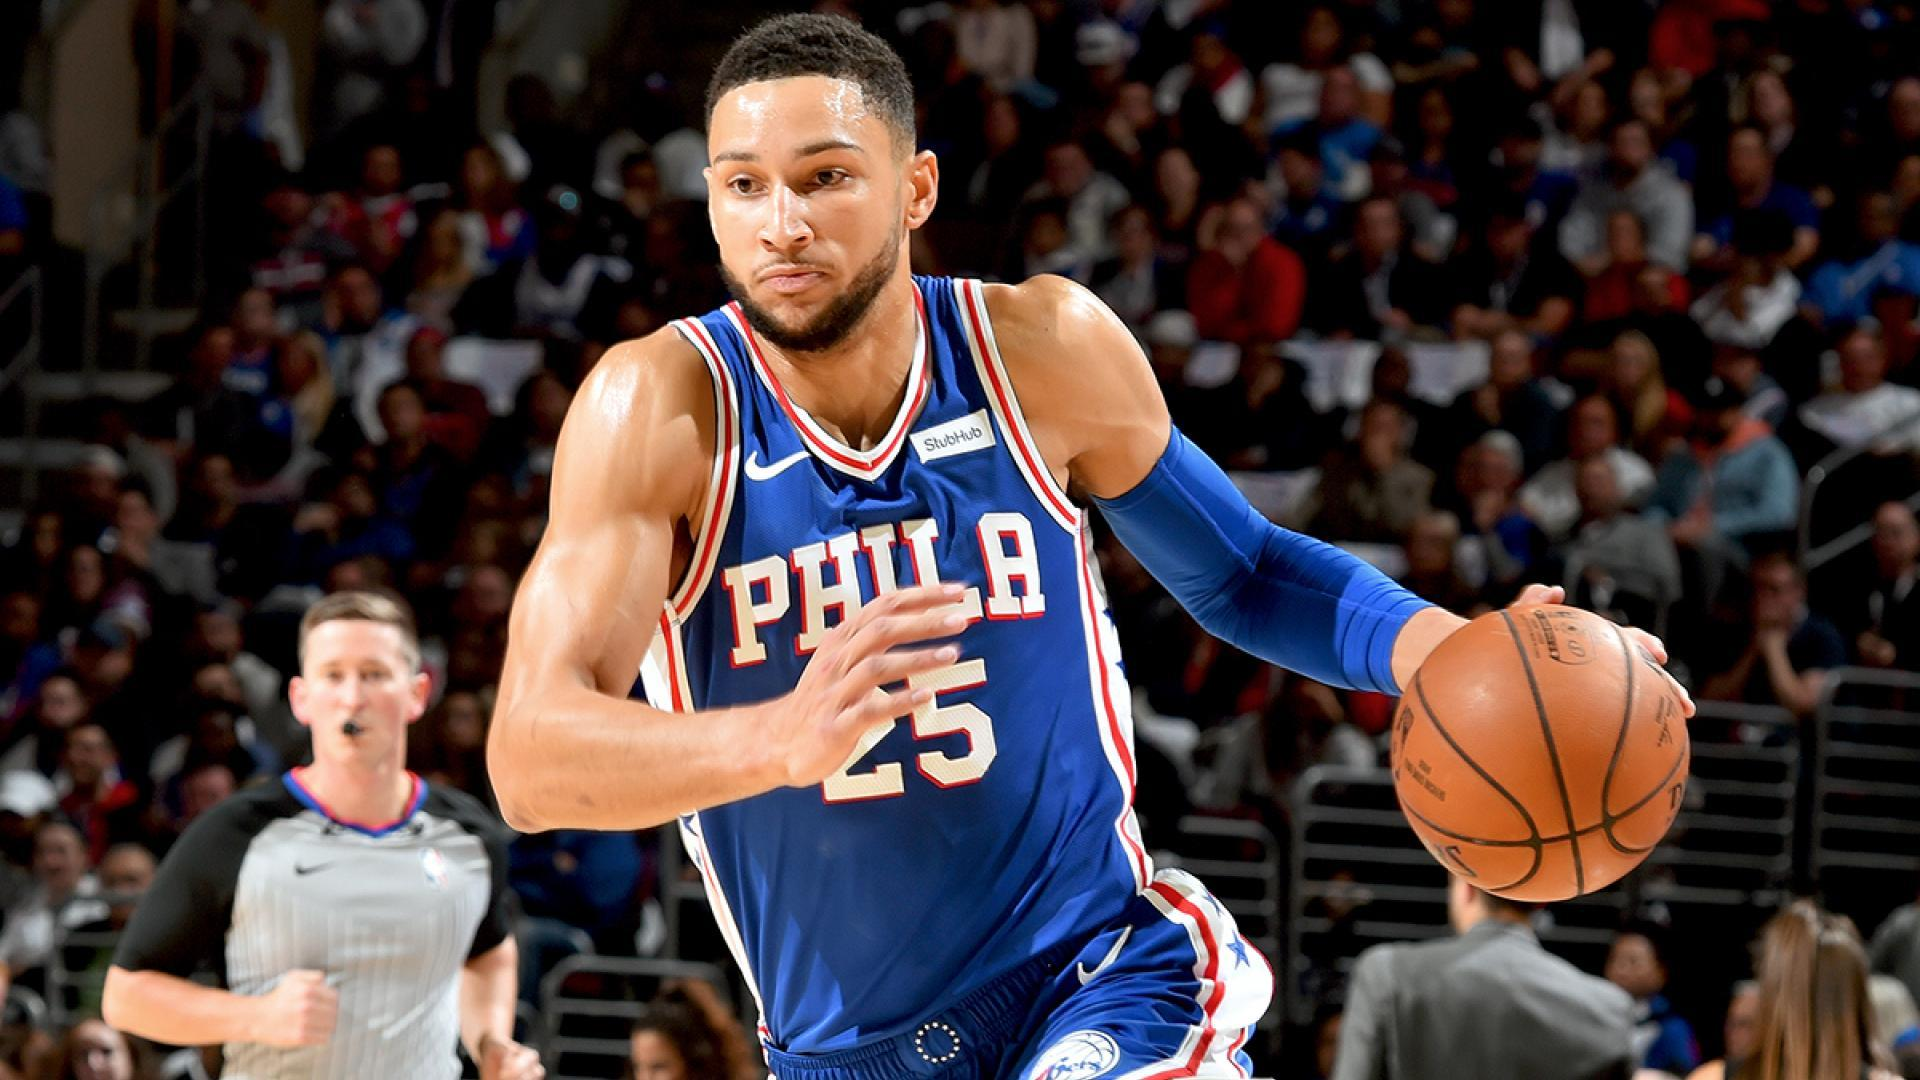 Simmons becomes Australia's first NBA All-Star